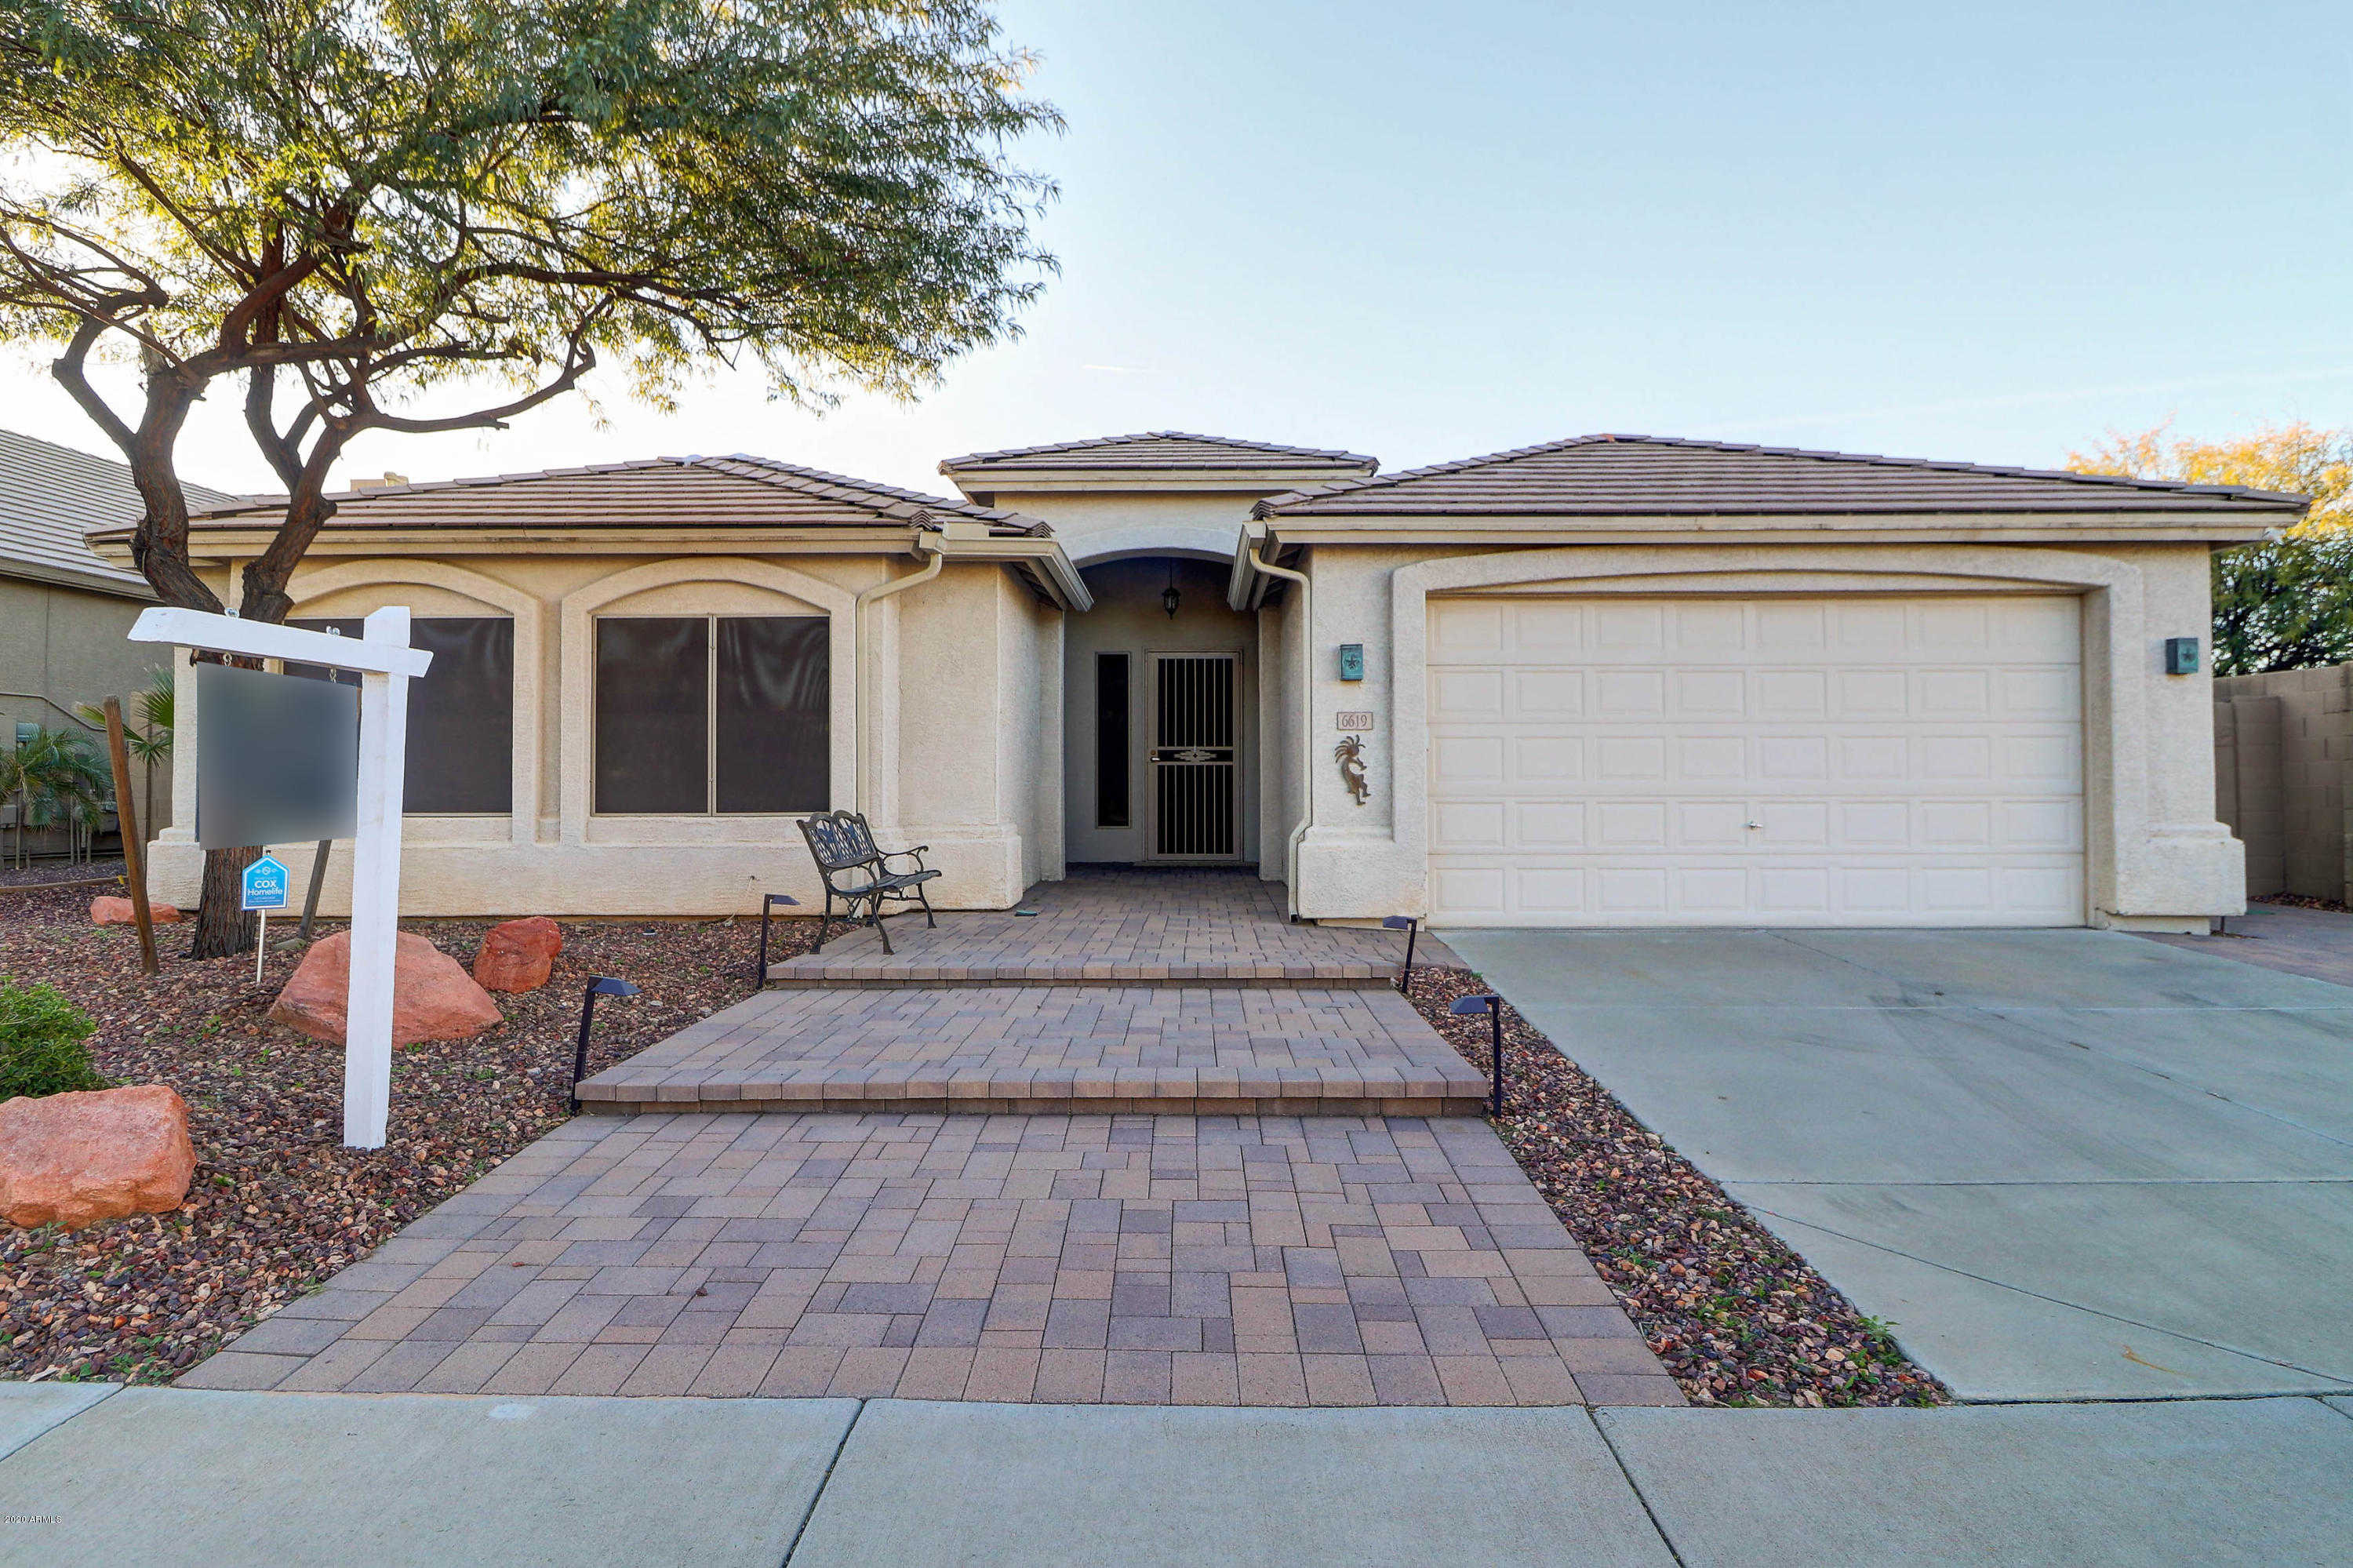 $419,000 - 5Br/2Ba - Home for Sale in Chaminade, Glendale